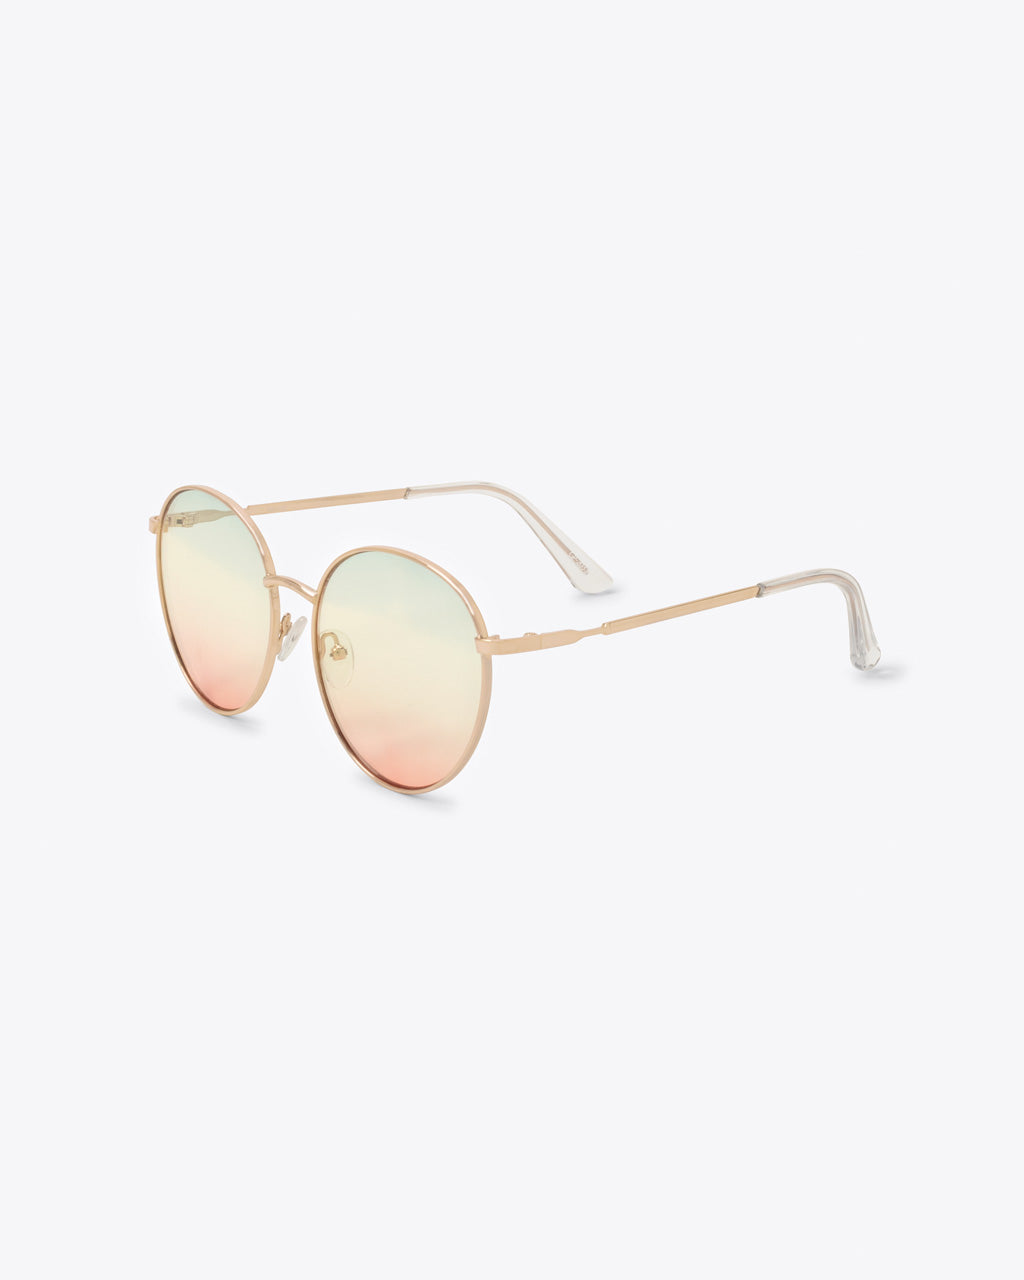 side angle view of oversized round sunglasses with lightly tinted rainbow lens